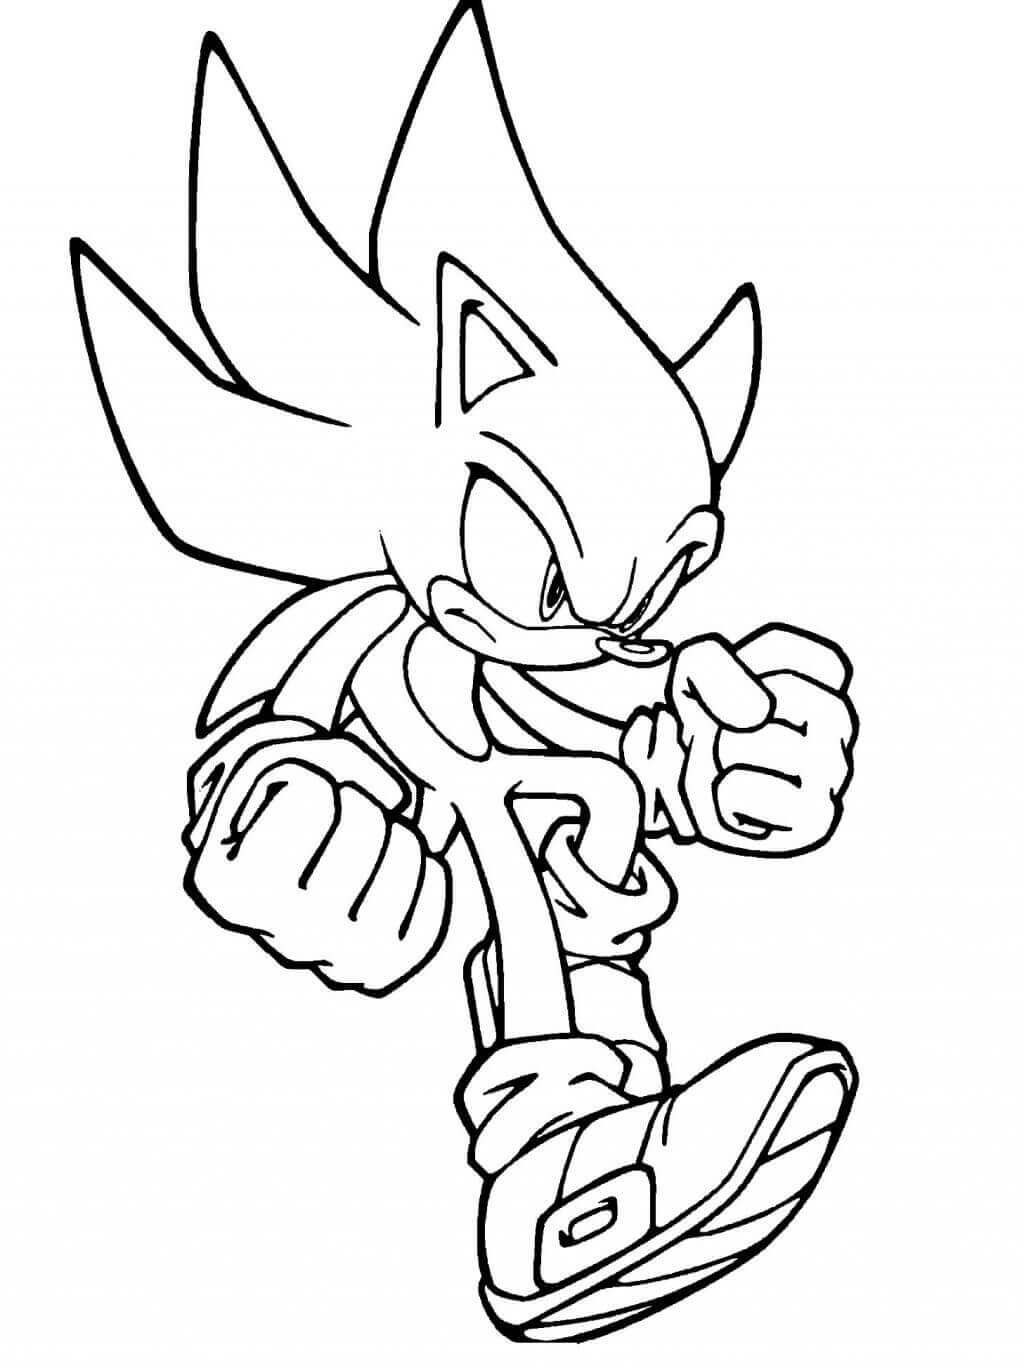 coloring pages sonic free printable sonic the hedgehog coloring pages for kids pages coloring sonic